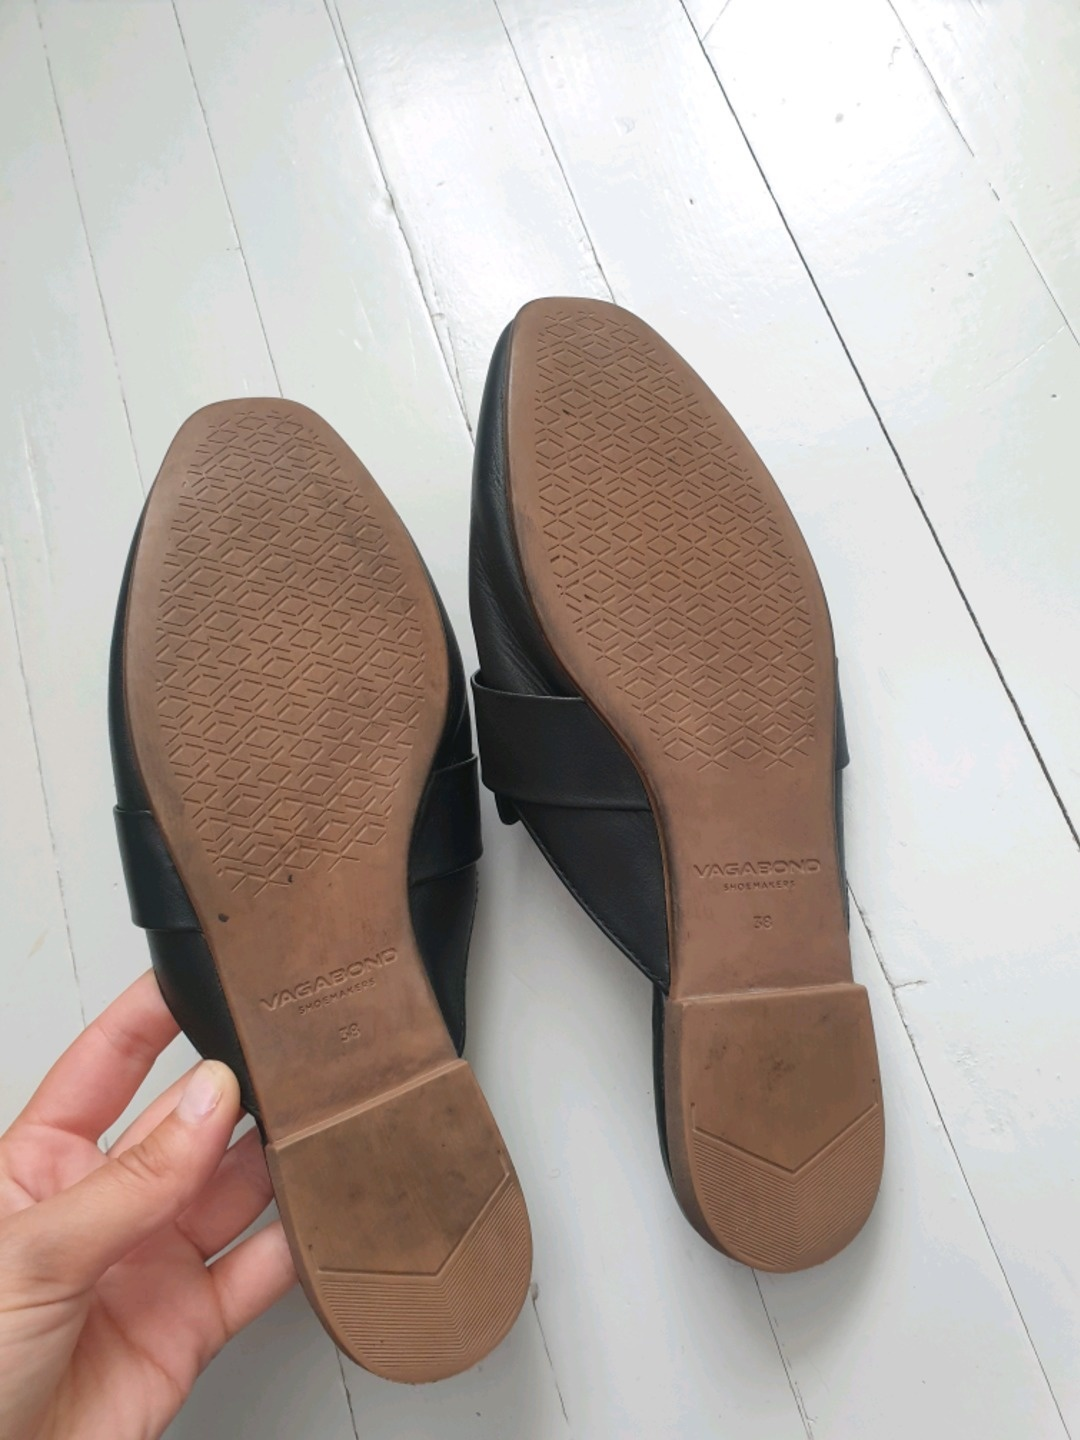 Women's flats & loafers - VAGABOND photo 4